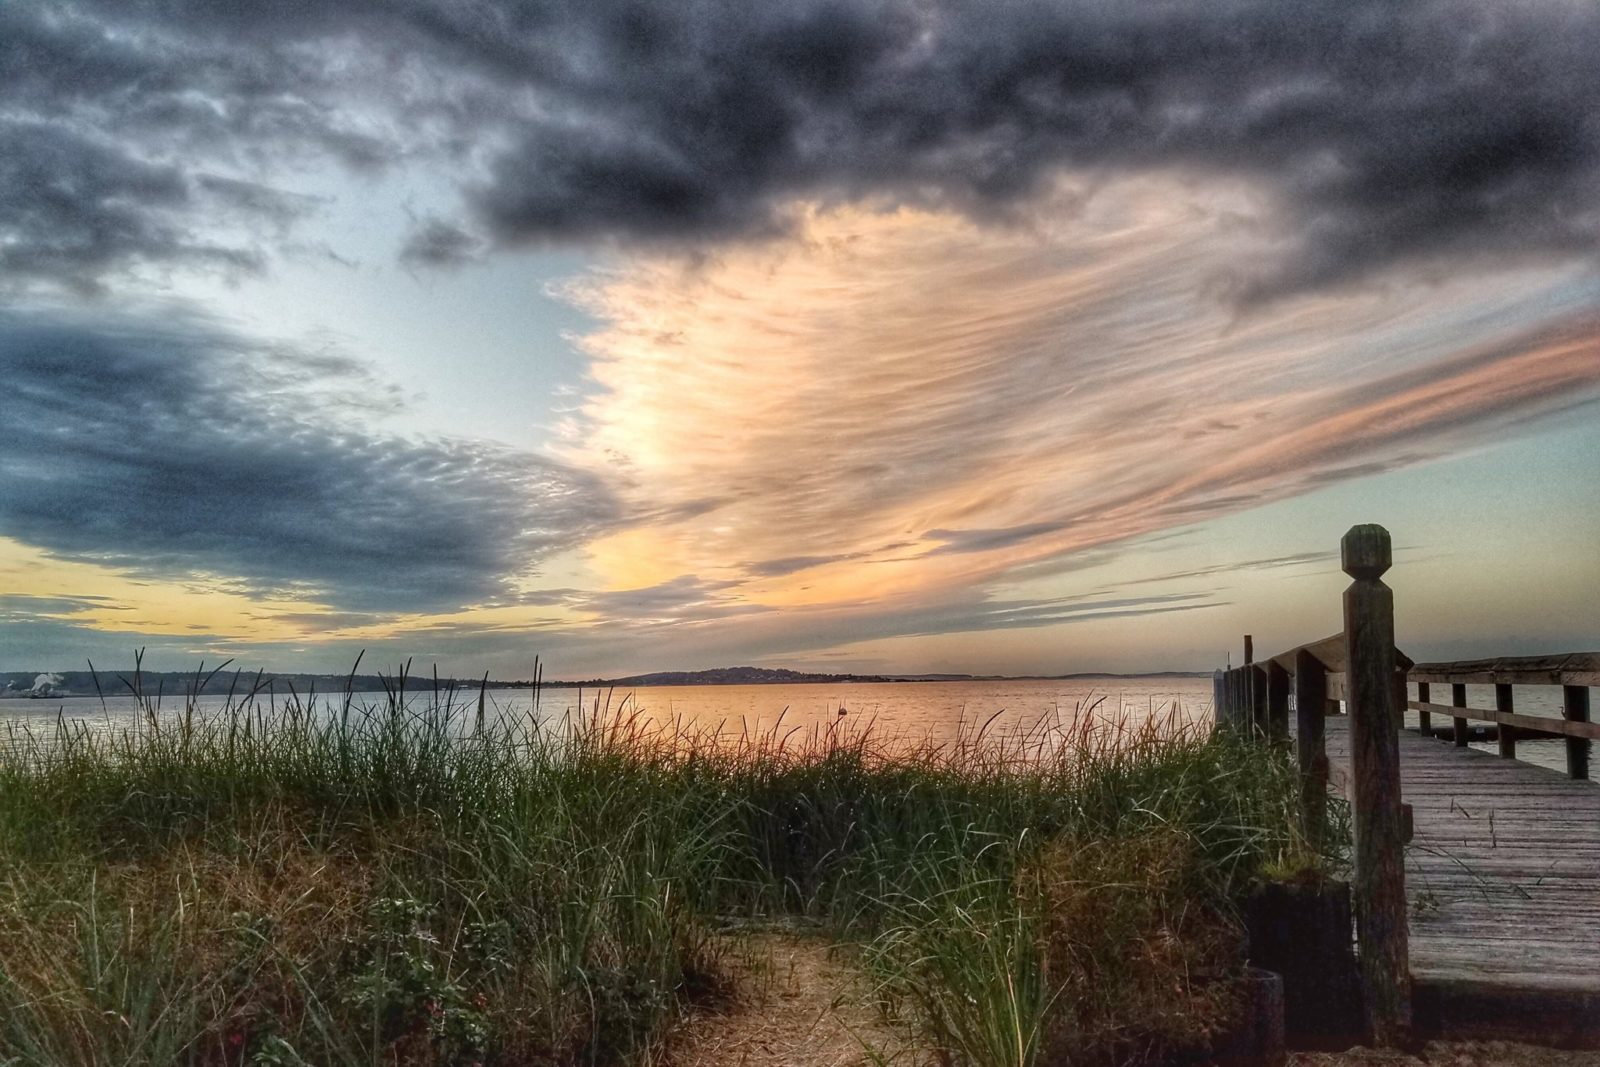 The Port Townsend Bay at sunset….